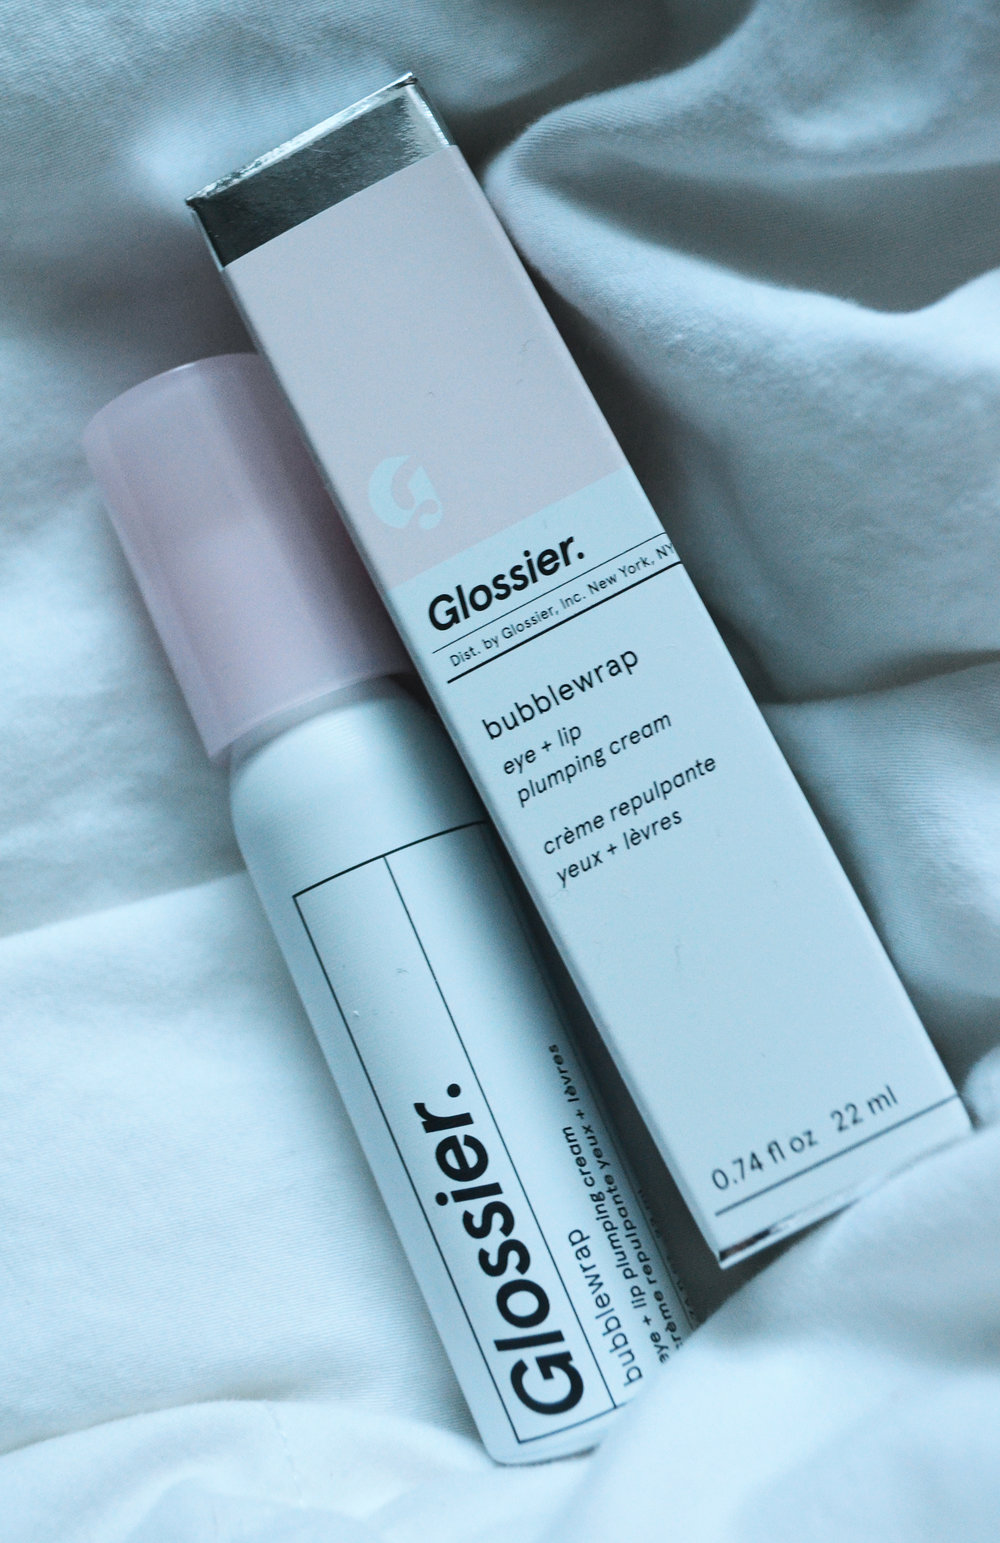 Review: Glossier Bubblewrap Eye + Lip Plumping Cream — Coffee With Annie